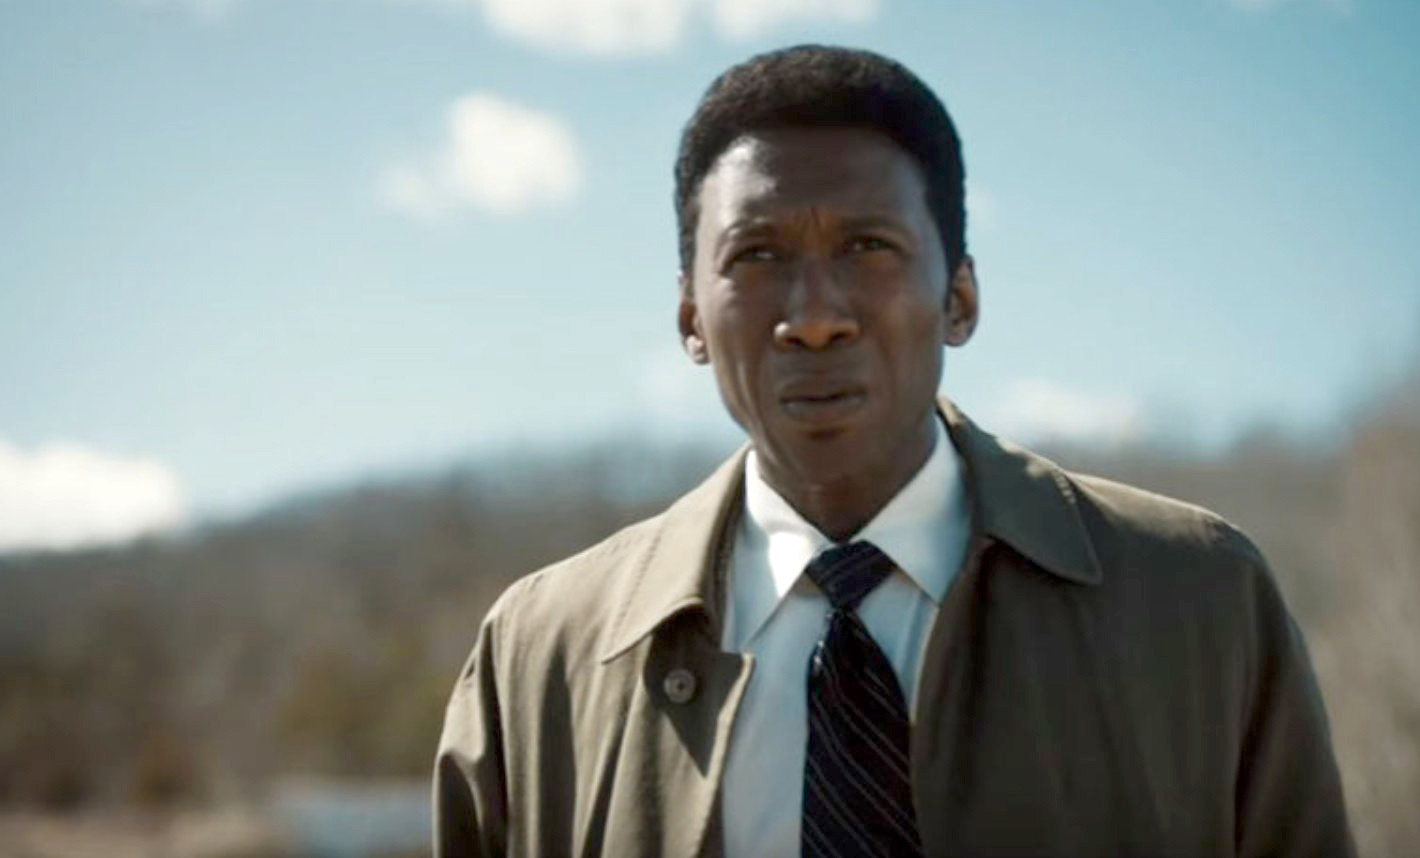 The First Trailer For 'True Detective' Season 3 Already Makes Up For Season 2